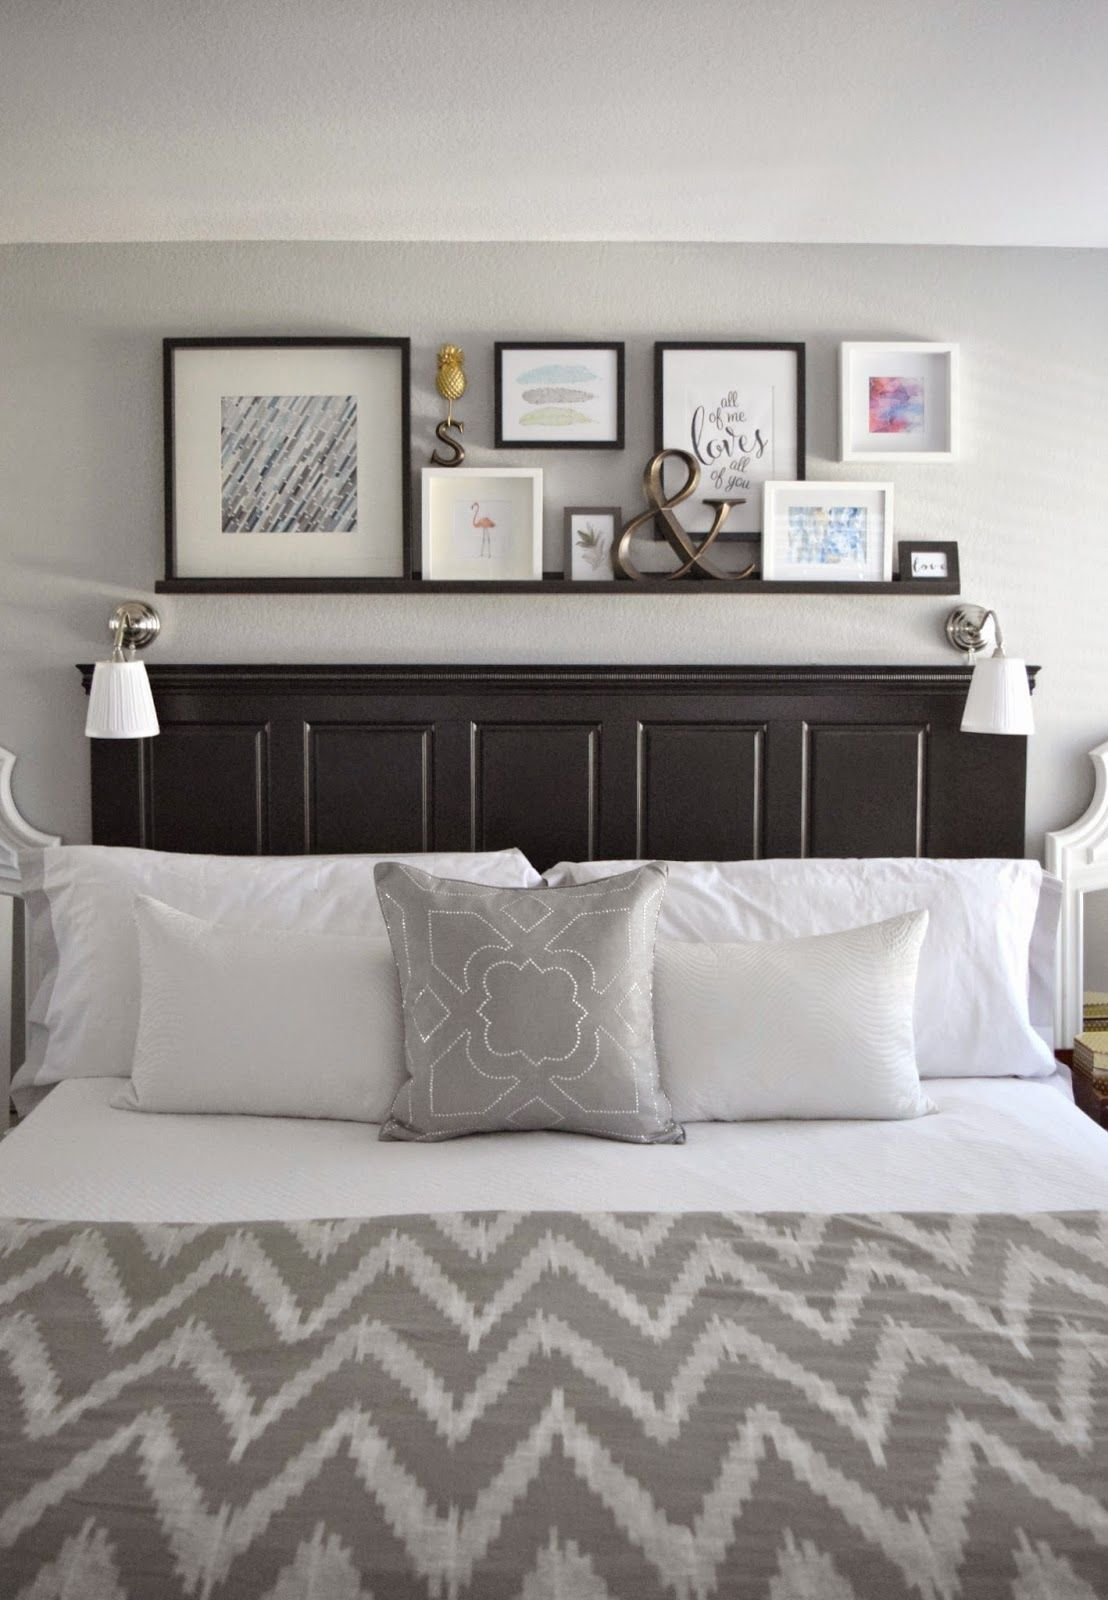 20 Decorating Tricks For Your Bedroom Small Master Bedroom Home